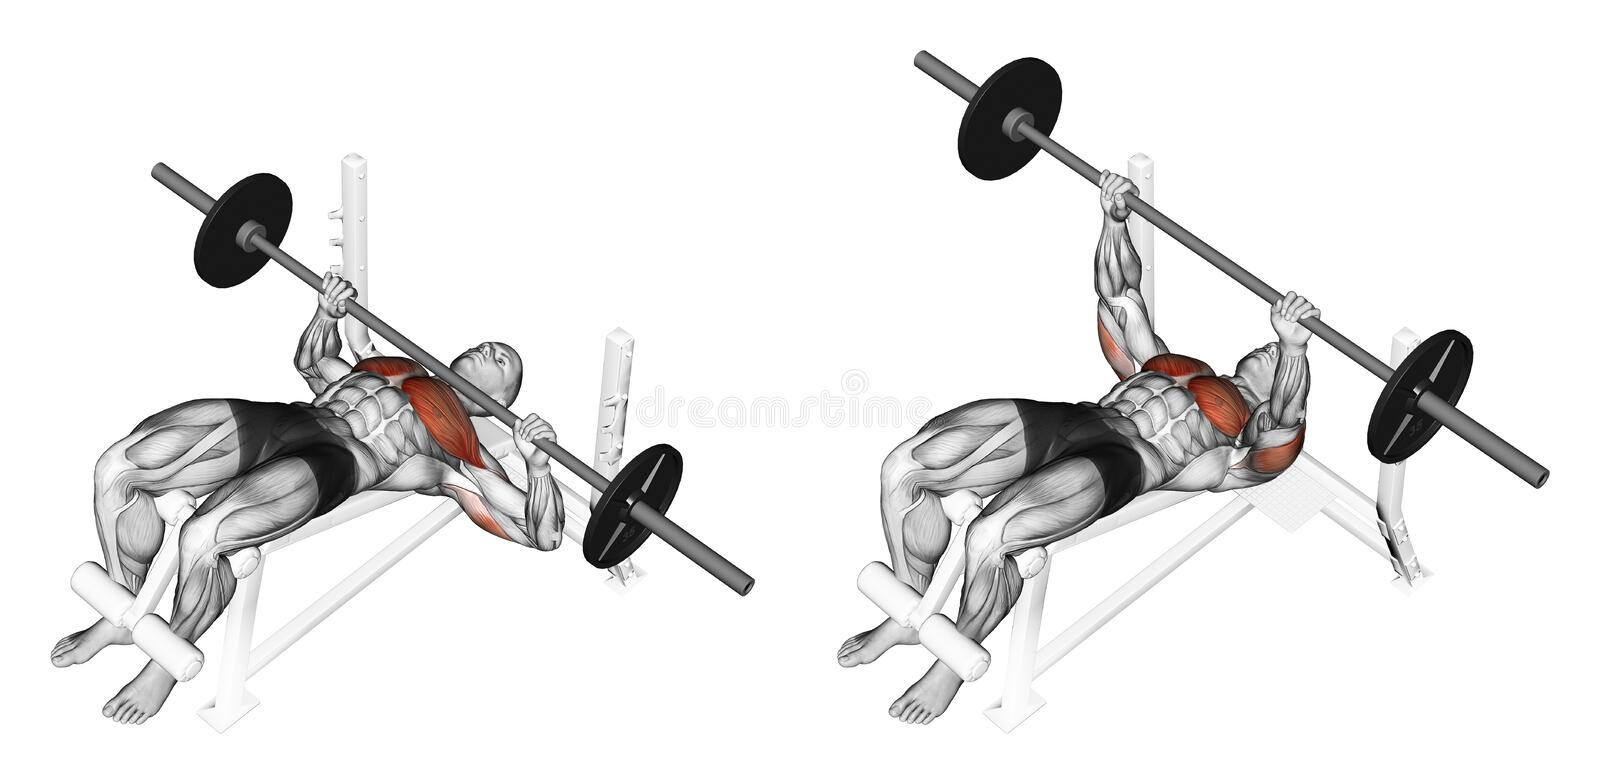 Exercising. Press of a bar, lying on a bench with. Press of a bar, lying on a bench with a slope. Exercising for bodybuilding. Target muscles are marked in red vector illustration